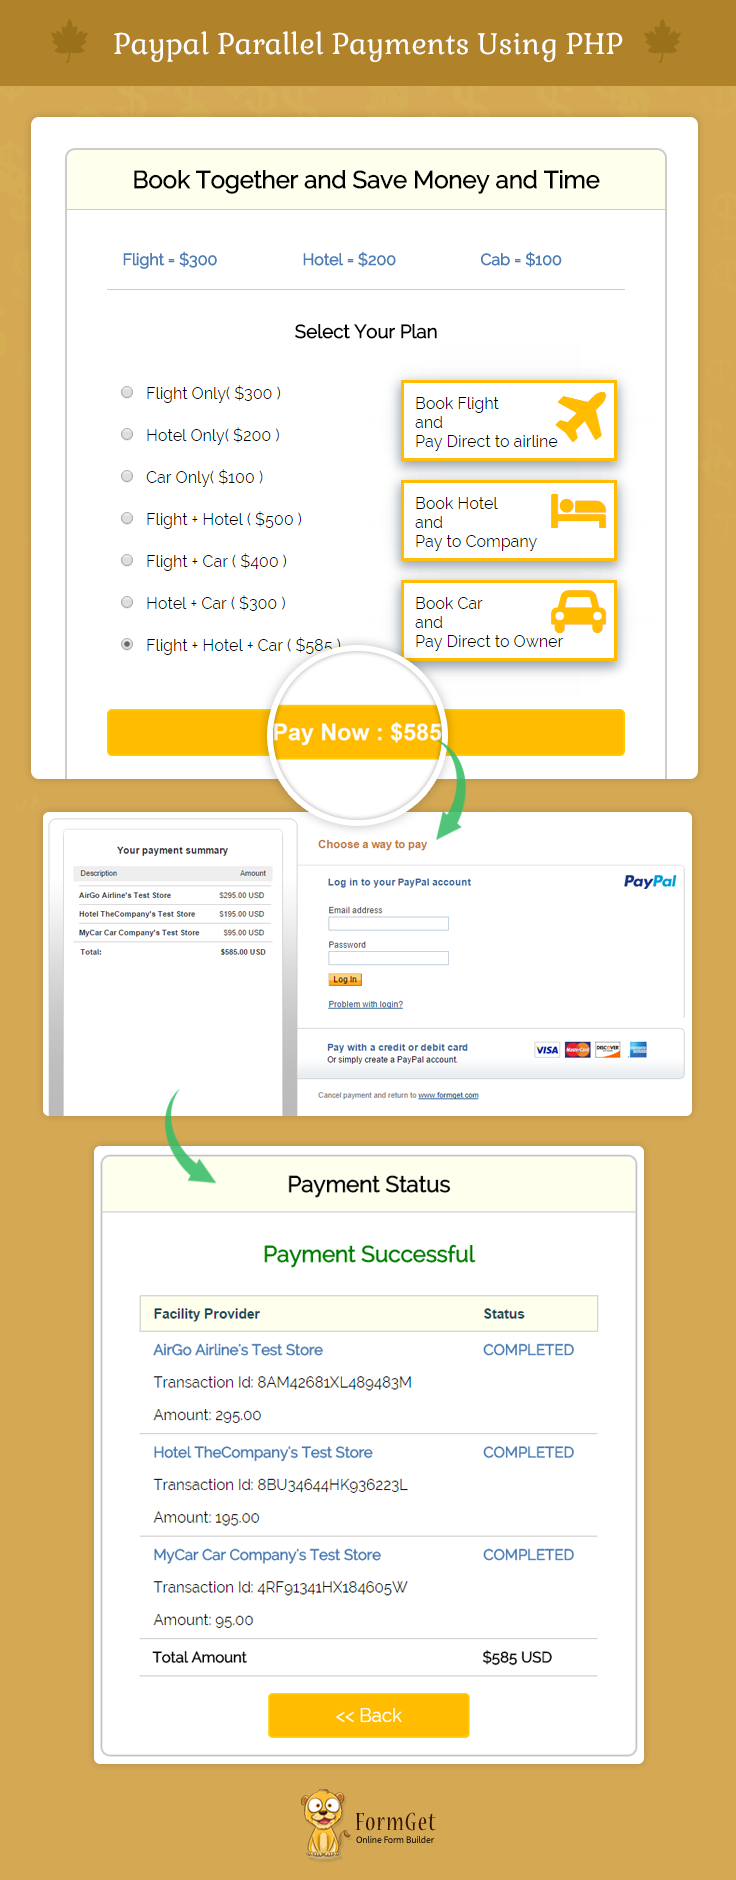 paypal-parallel payments-using php